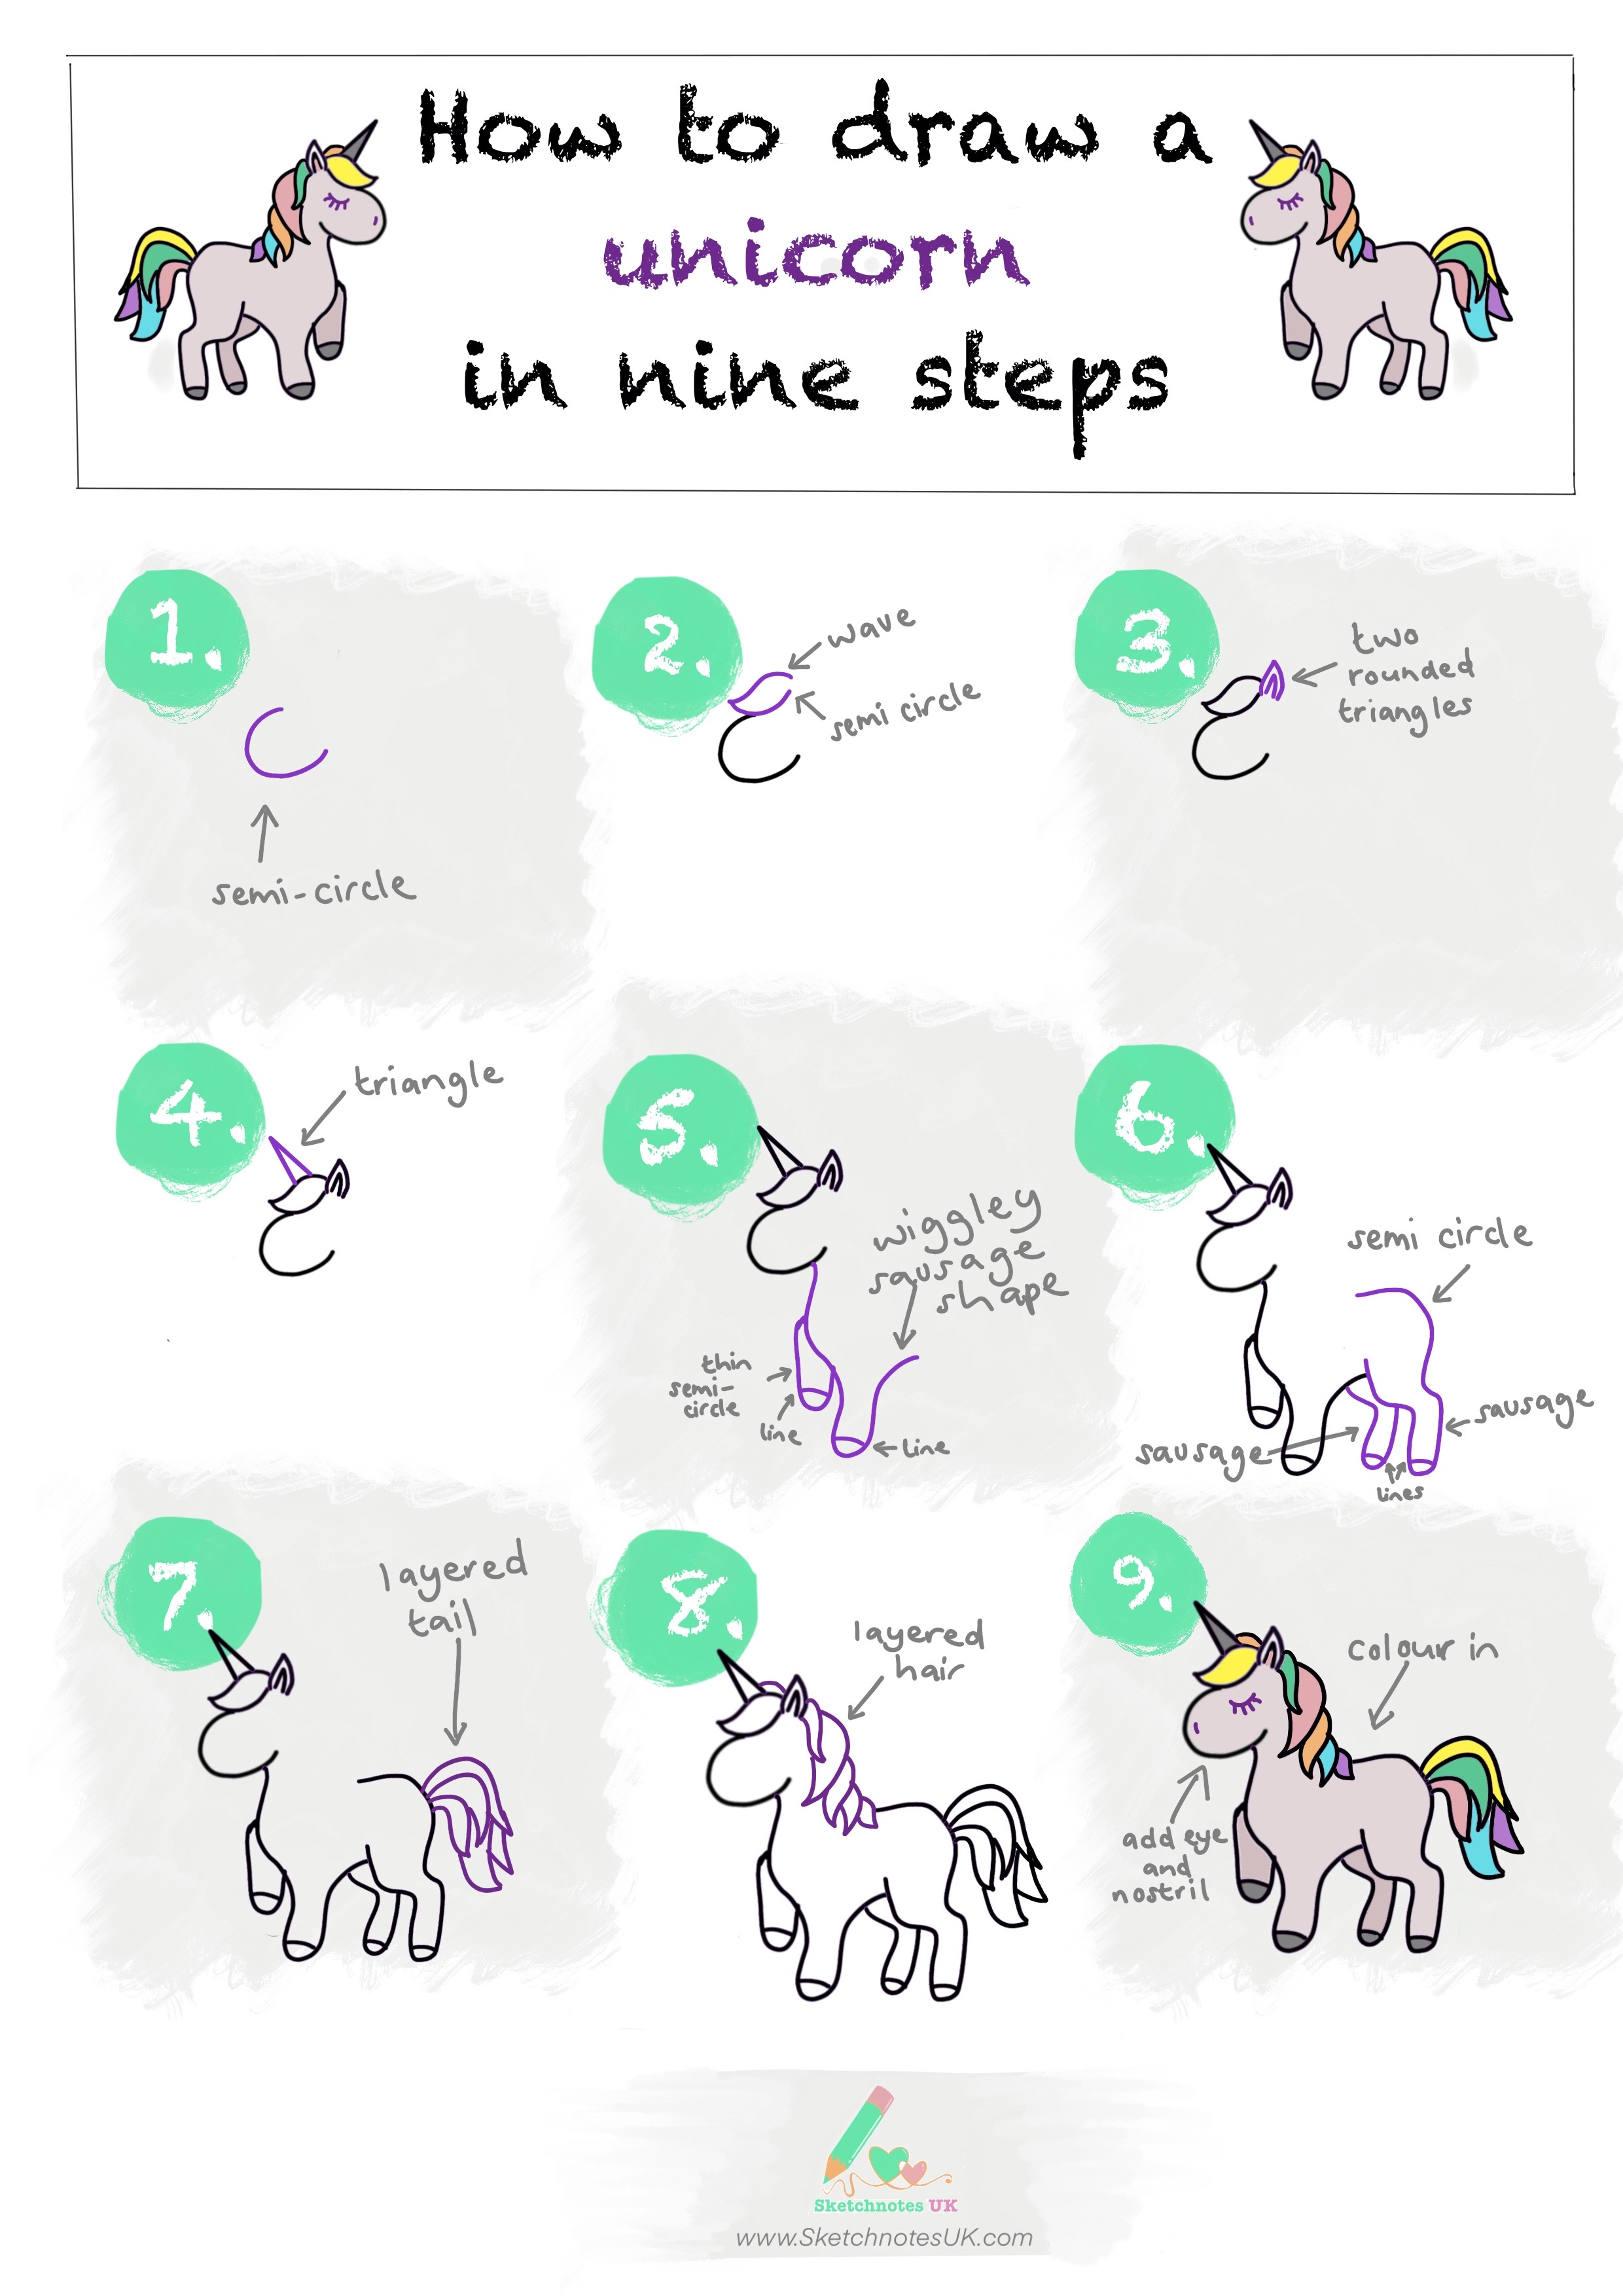 How to draw a unicorn.JPG